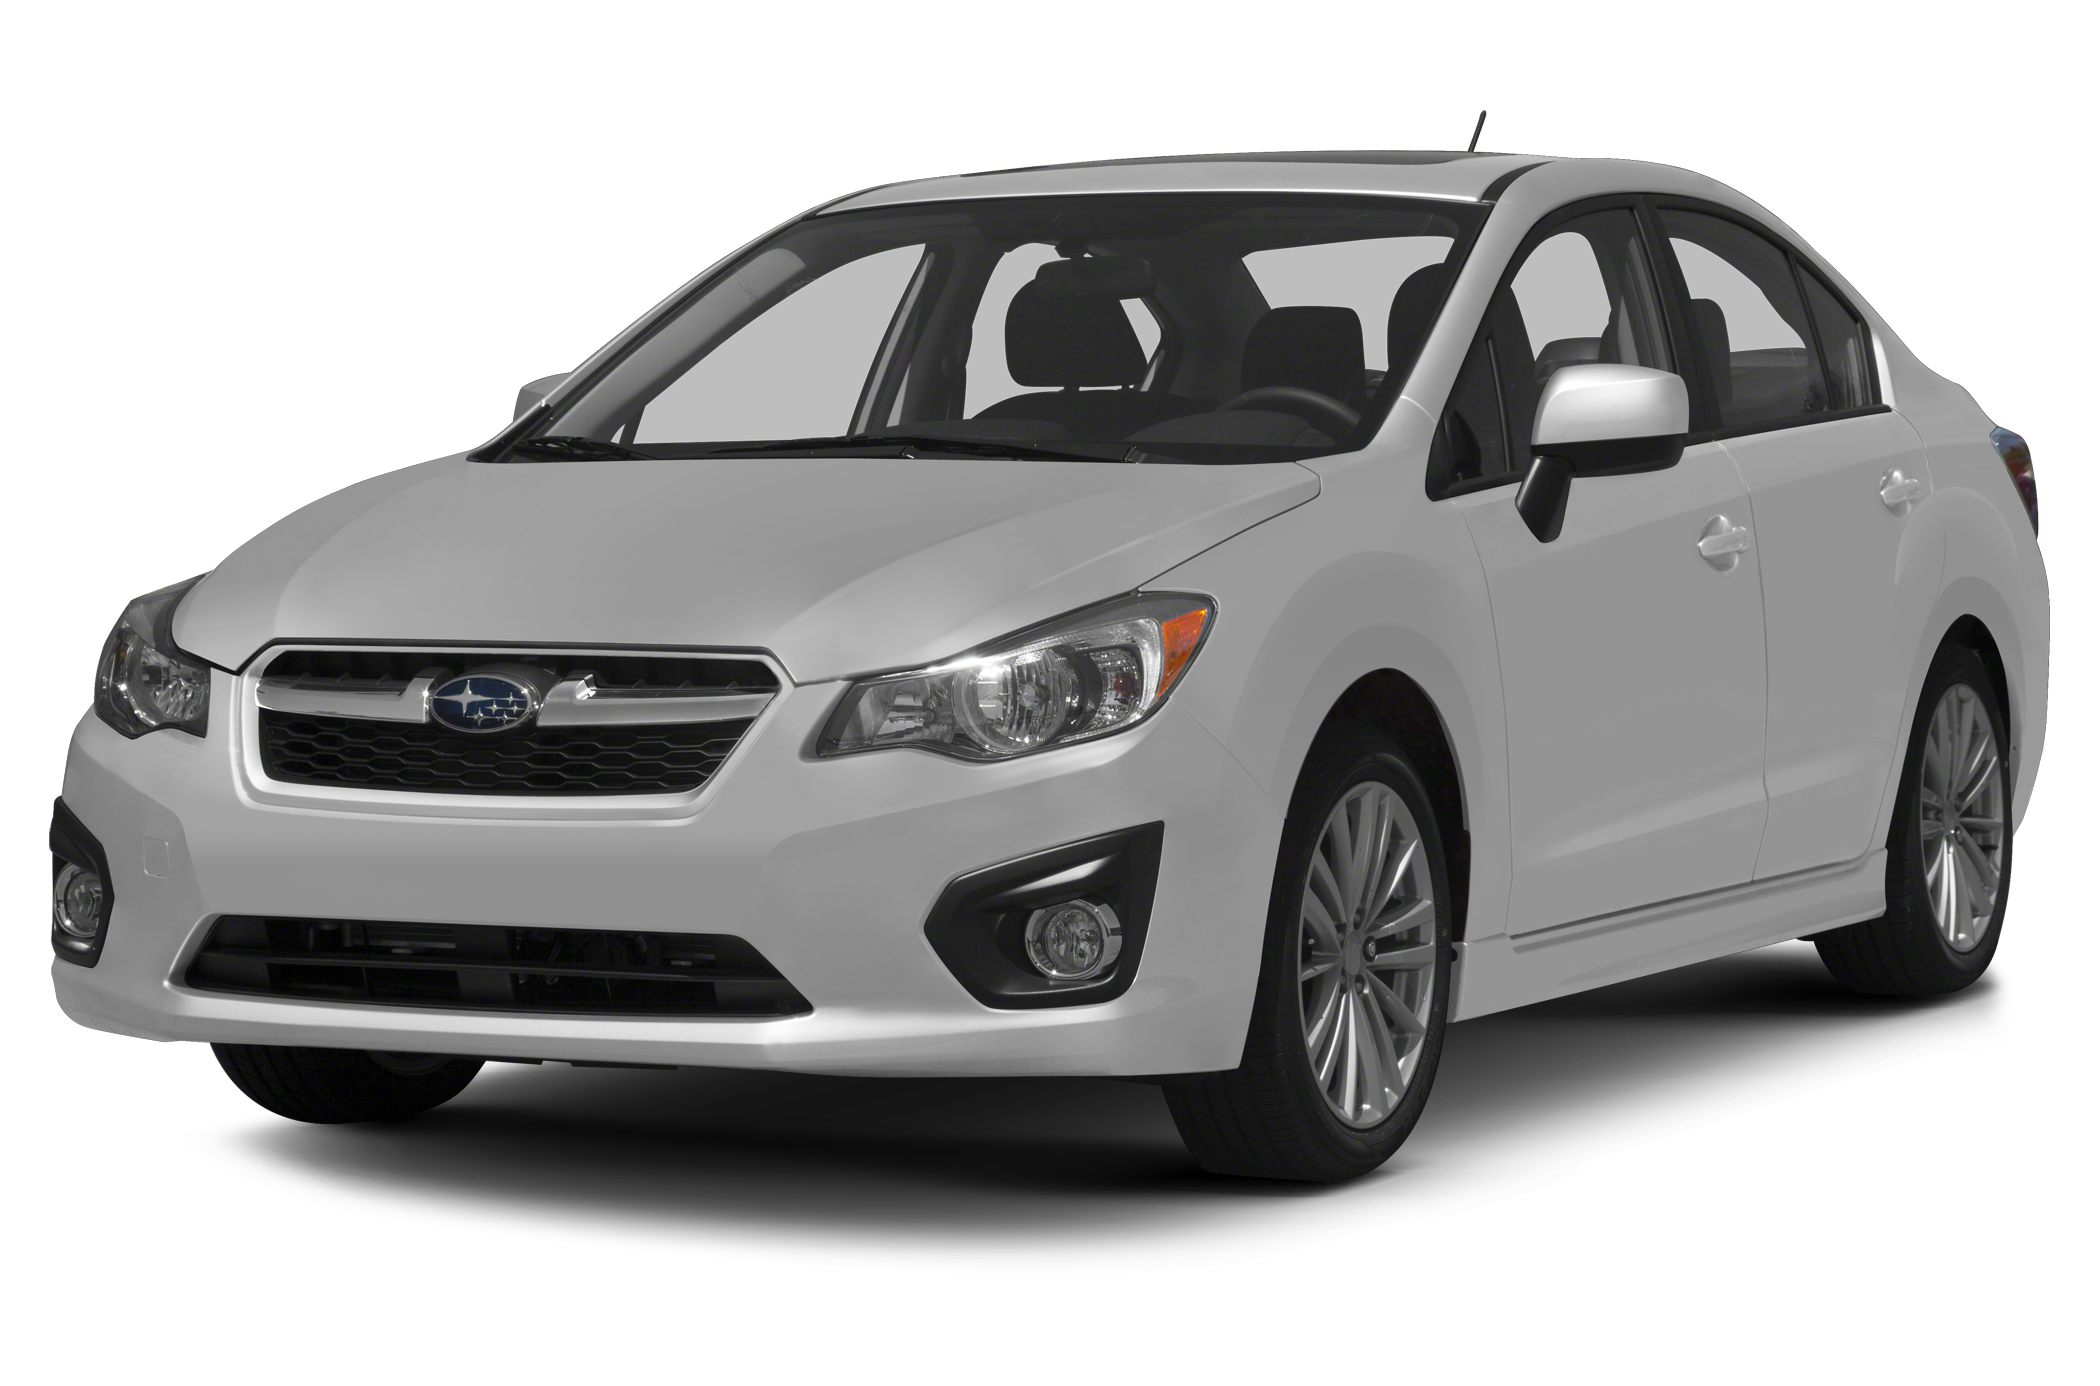 2012 Subaru Impreza 20i Premium Call us at 866-539-4597 today to schedule your test drive Miles